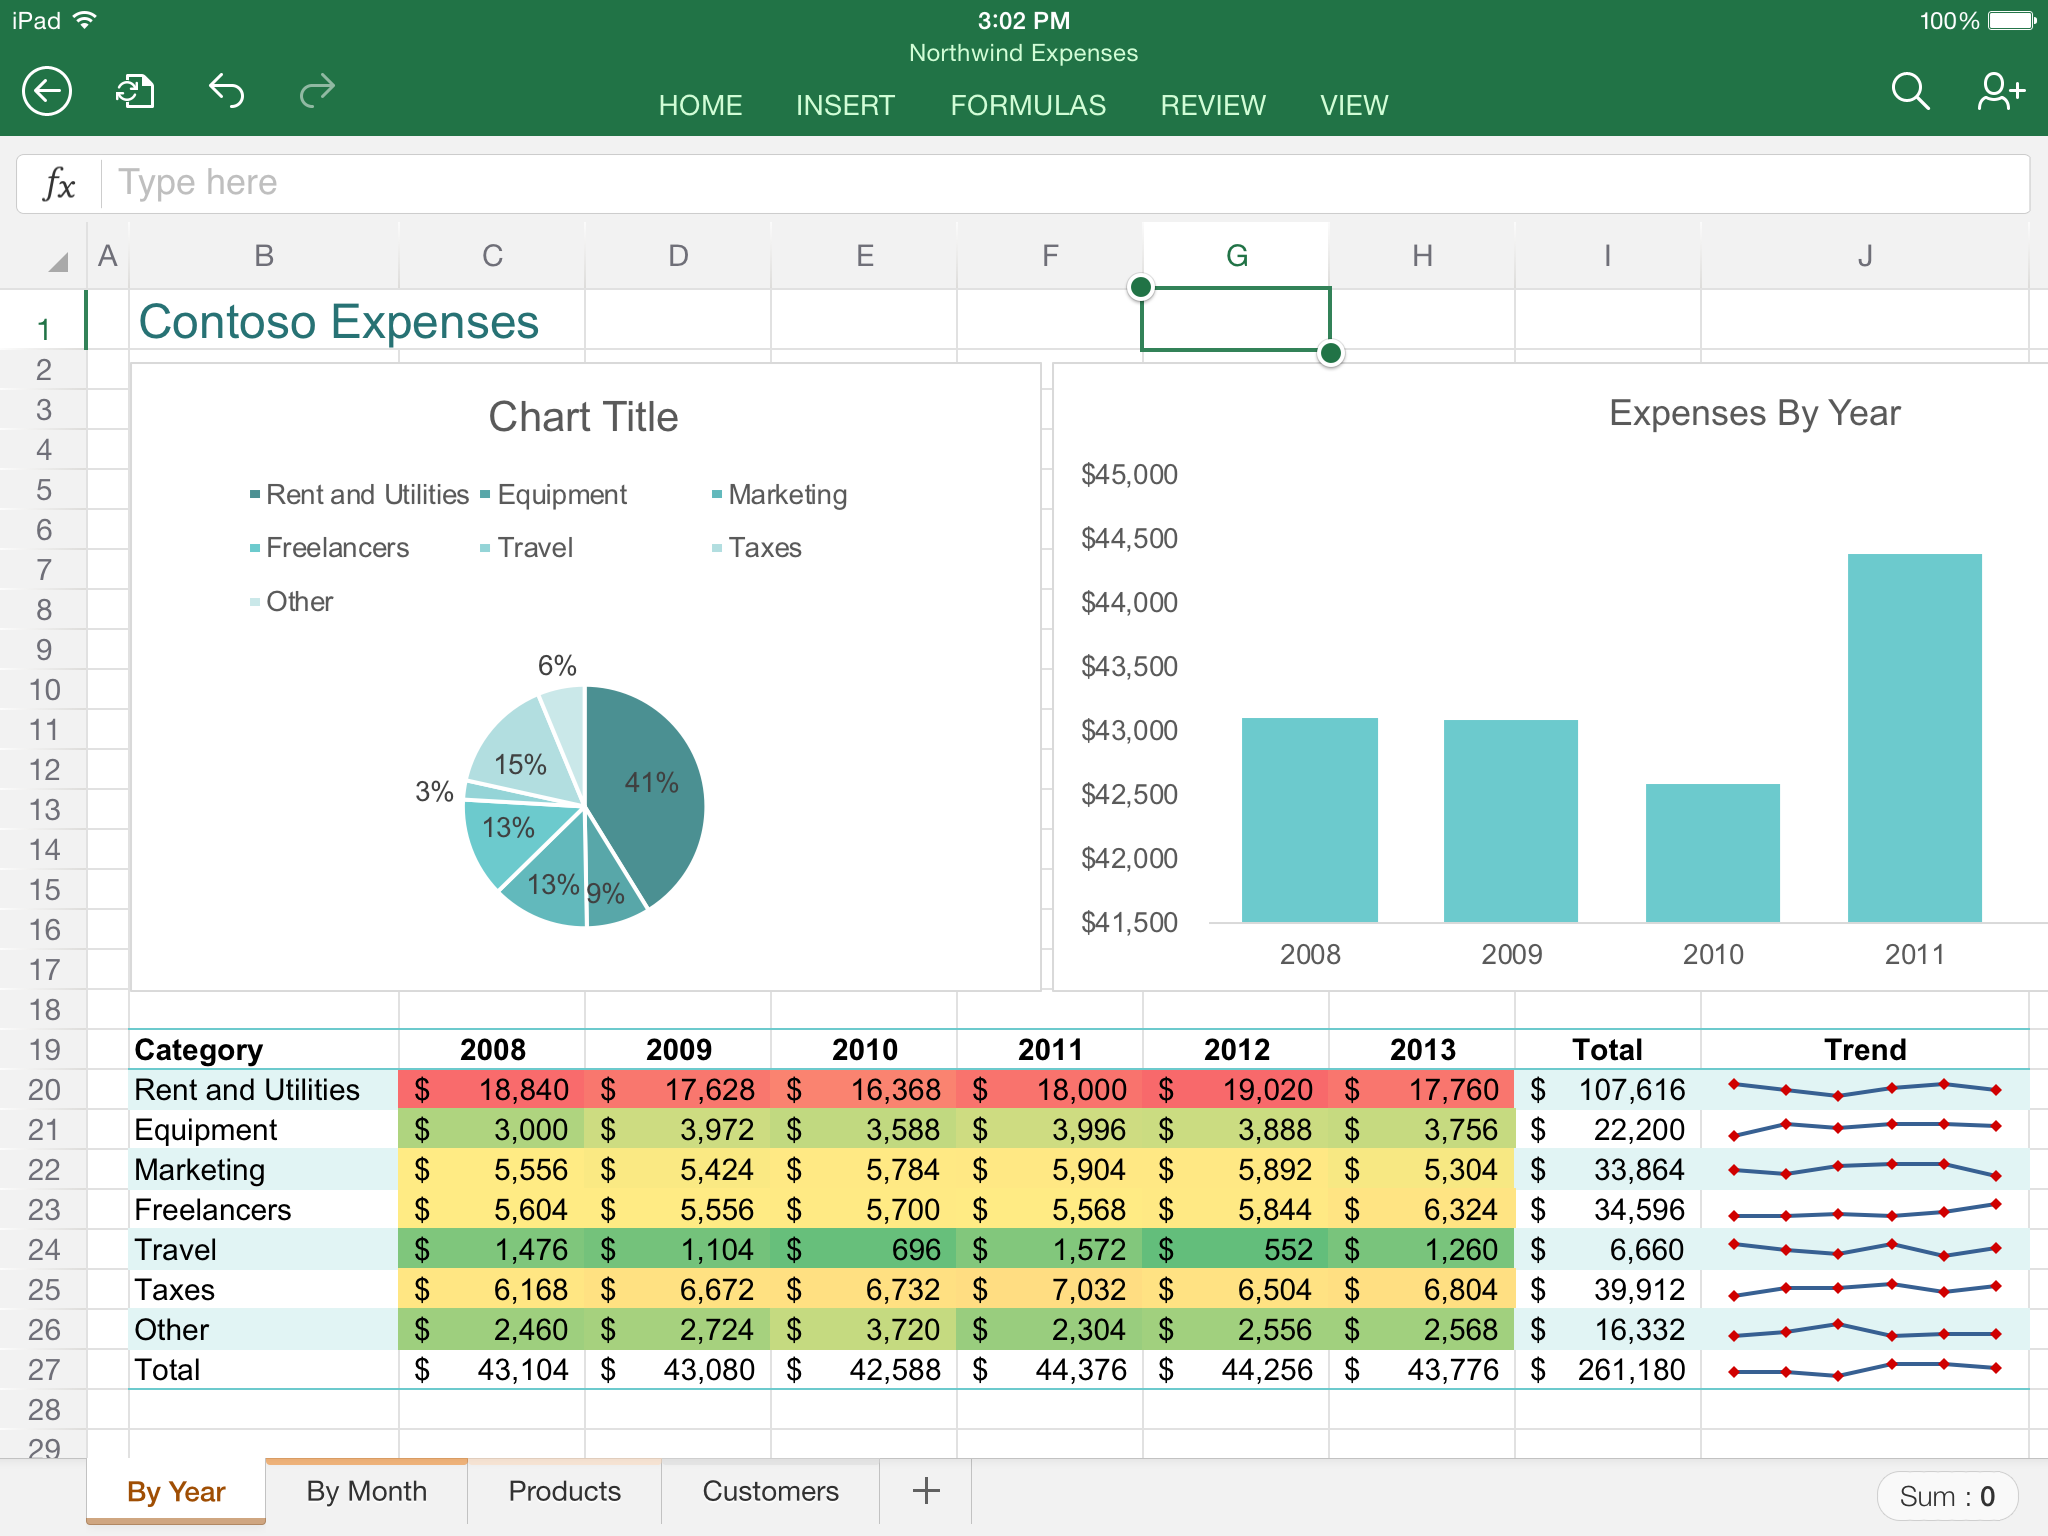 Ediblewildsus  Pleasing App Highlight Excel  Mobile Digital Now With Fair Excel In Action With Awesome Excel Extract Text Also Powerpivot For Excel In Addition Show Formula Bar In Excel And Creating A Database In Excel As Well As Multiple If In Excel Additionally How To Recover Deleted Excel Files From Youstonybrookedu With Ediblewildsus  Fair App Highlight Excel  Mobile Digital Now With Awesome Excel In Action And Pleasing Excel Extract Text Also Powerpivot For Excel In Addition Show Formula Bar In Excel From Youstonybrookedu